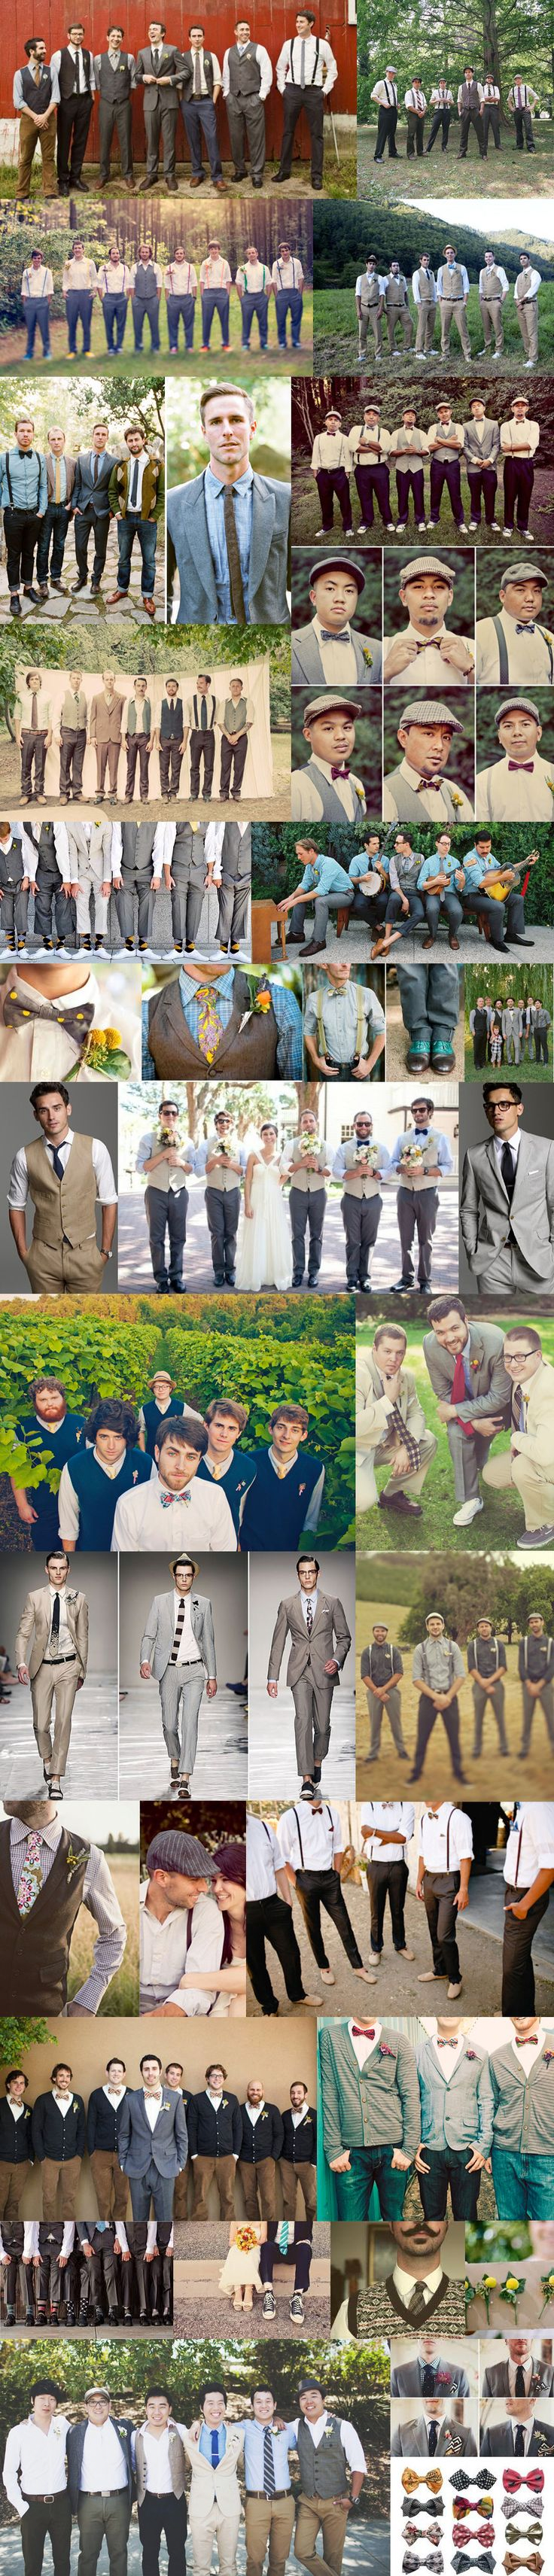 Mismatched groomsmen outfits! - all in gray with white shirts, but choice of vest, suspenders, bow tie, tie, etc.